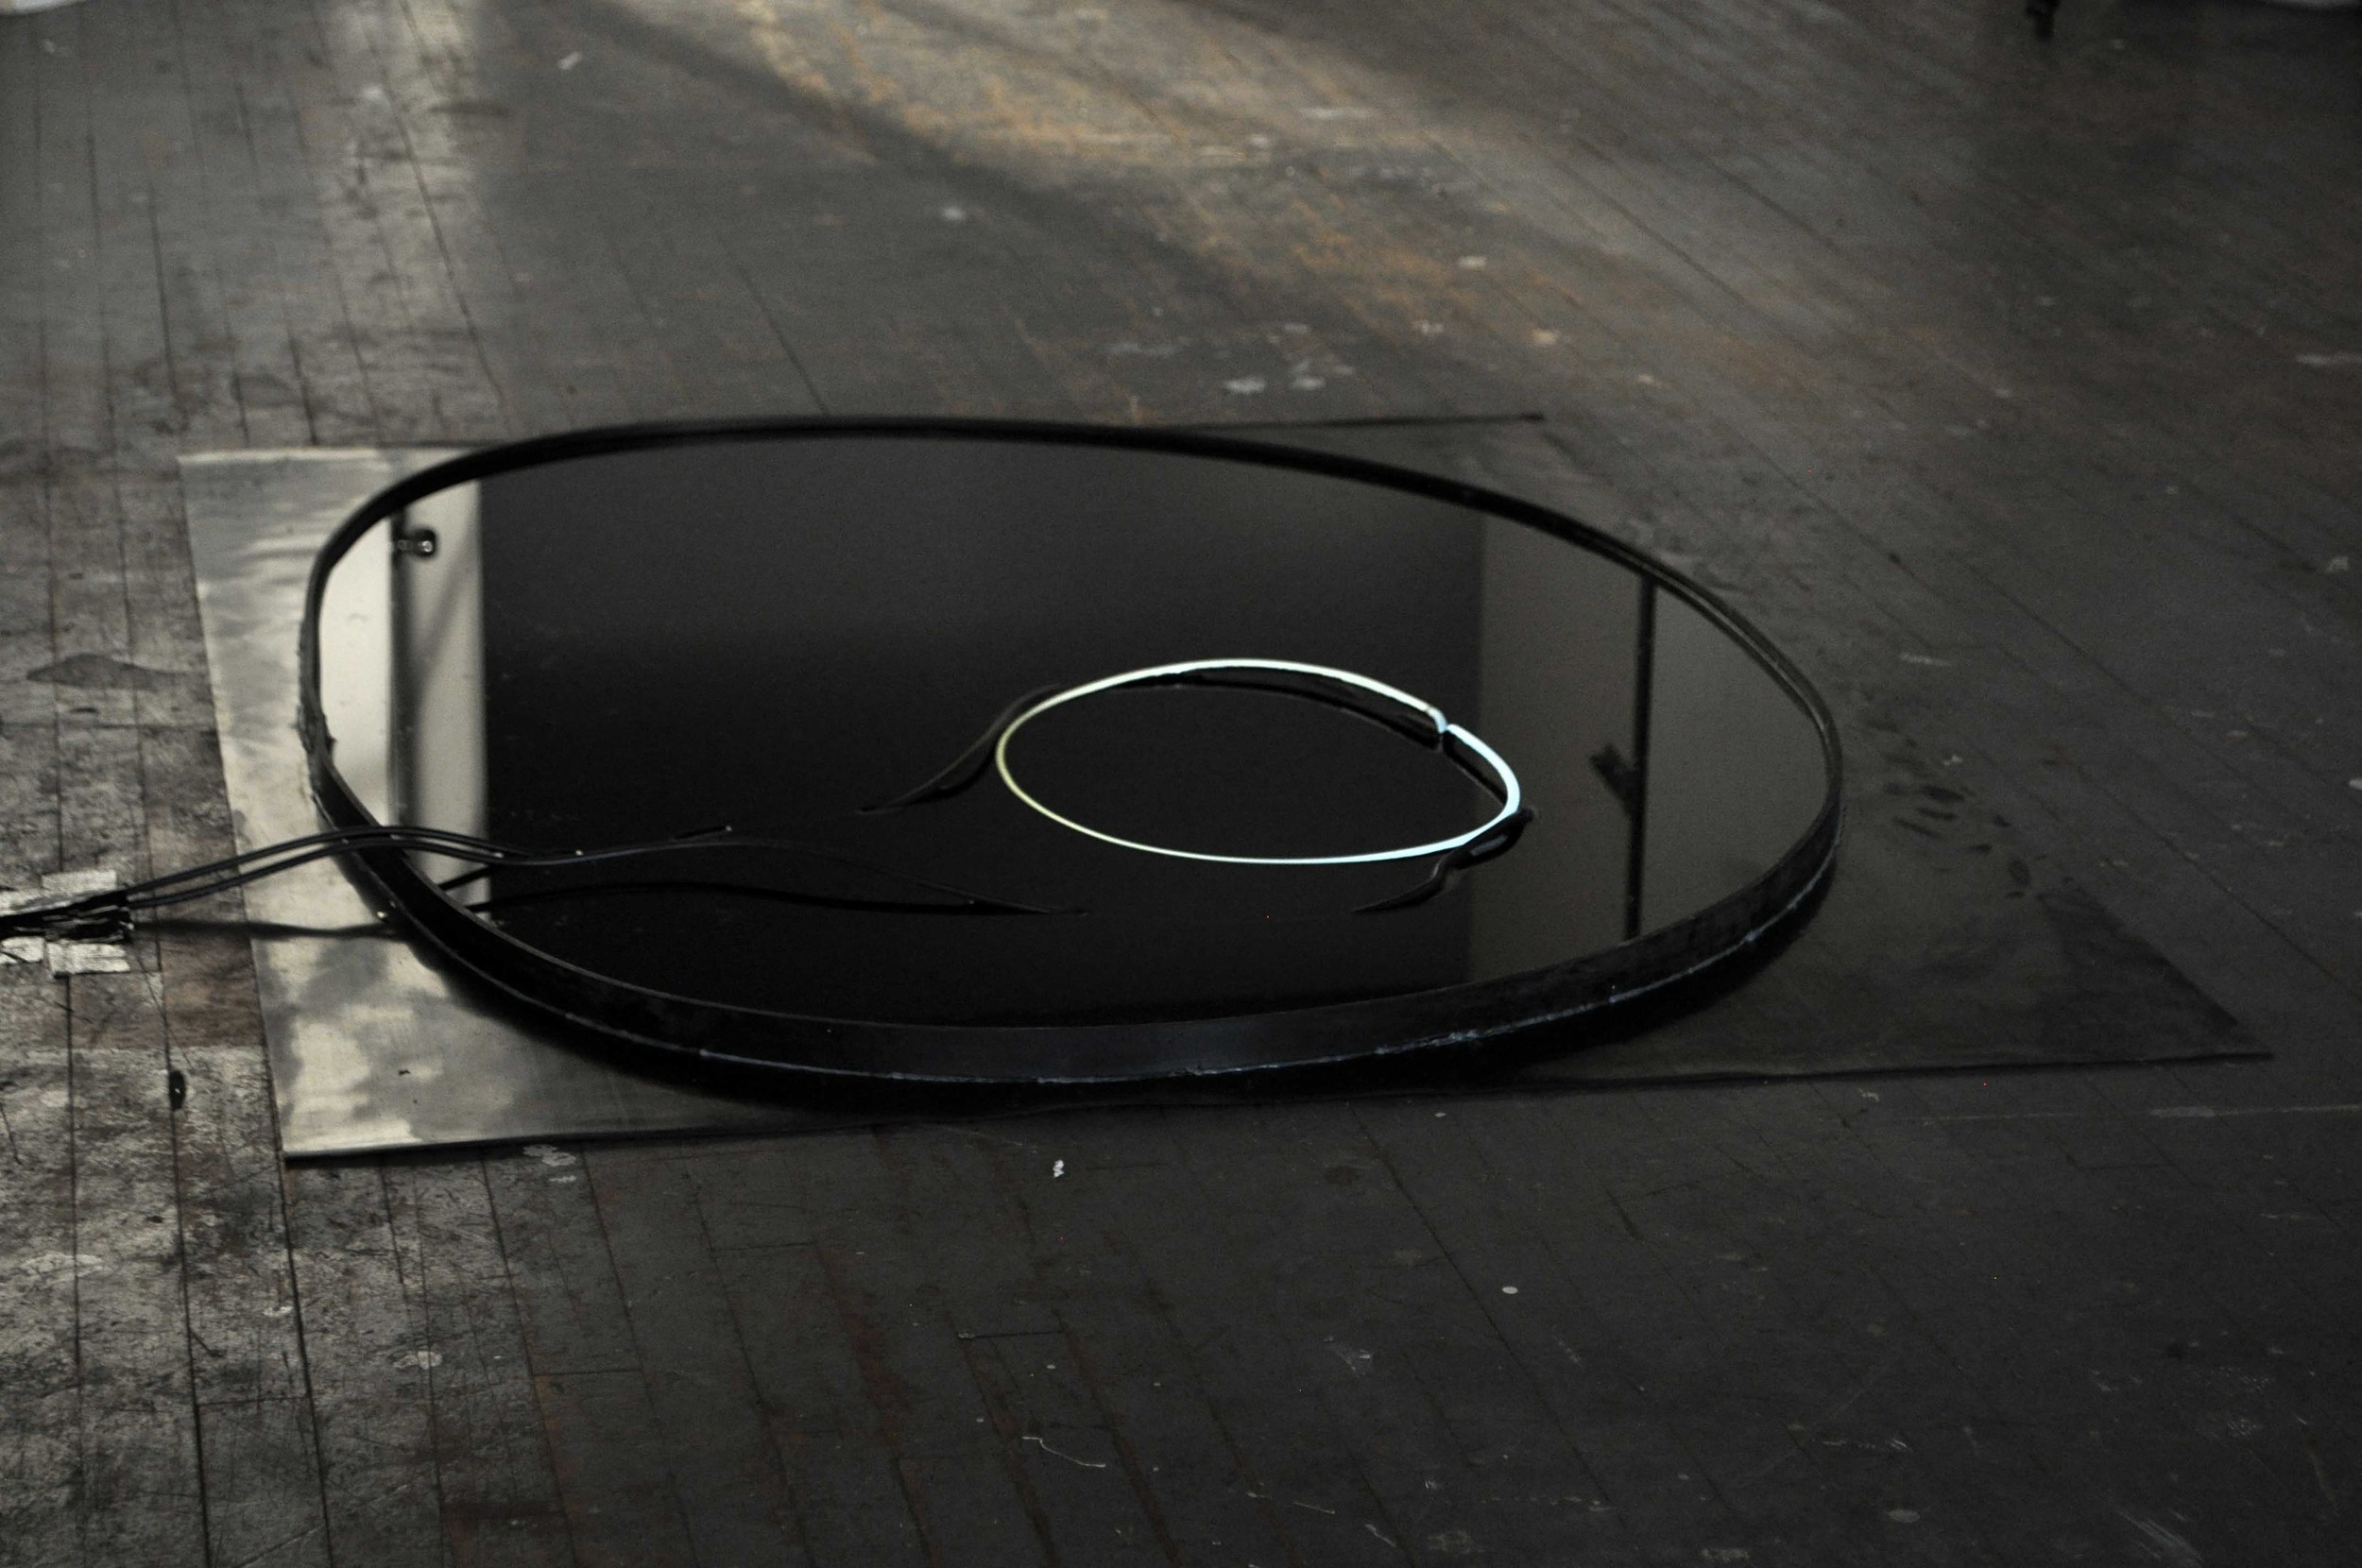 More than half Less than full, 2014 neon, water, rubber, electrical cables 152 x 122 x 5 cm